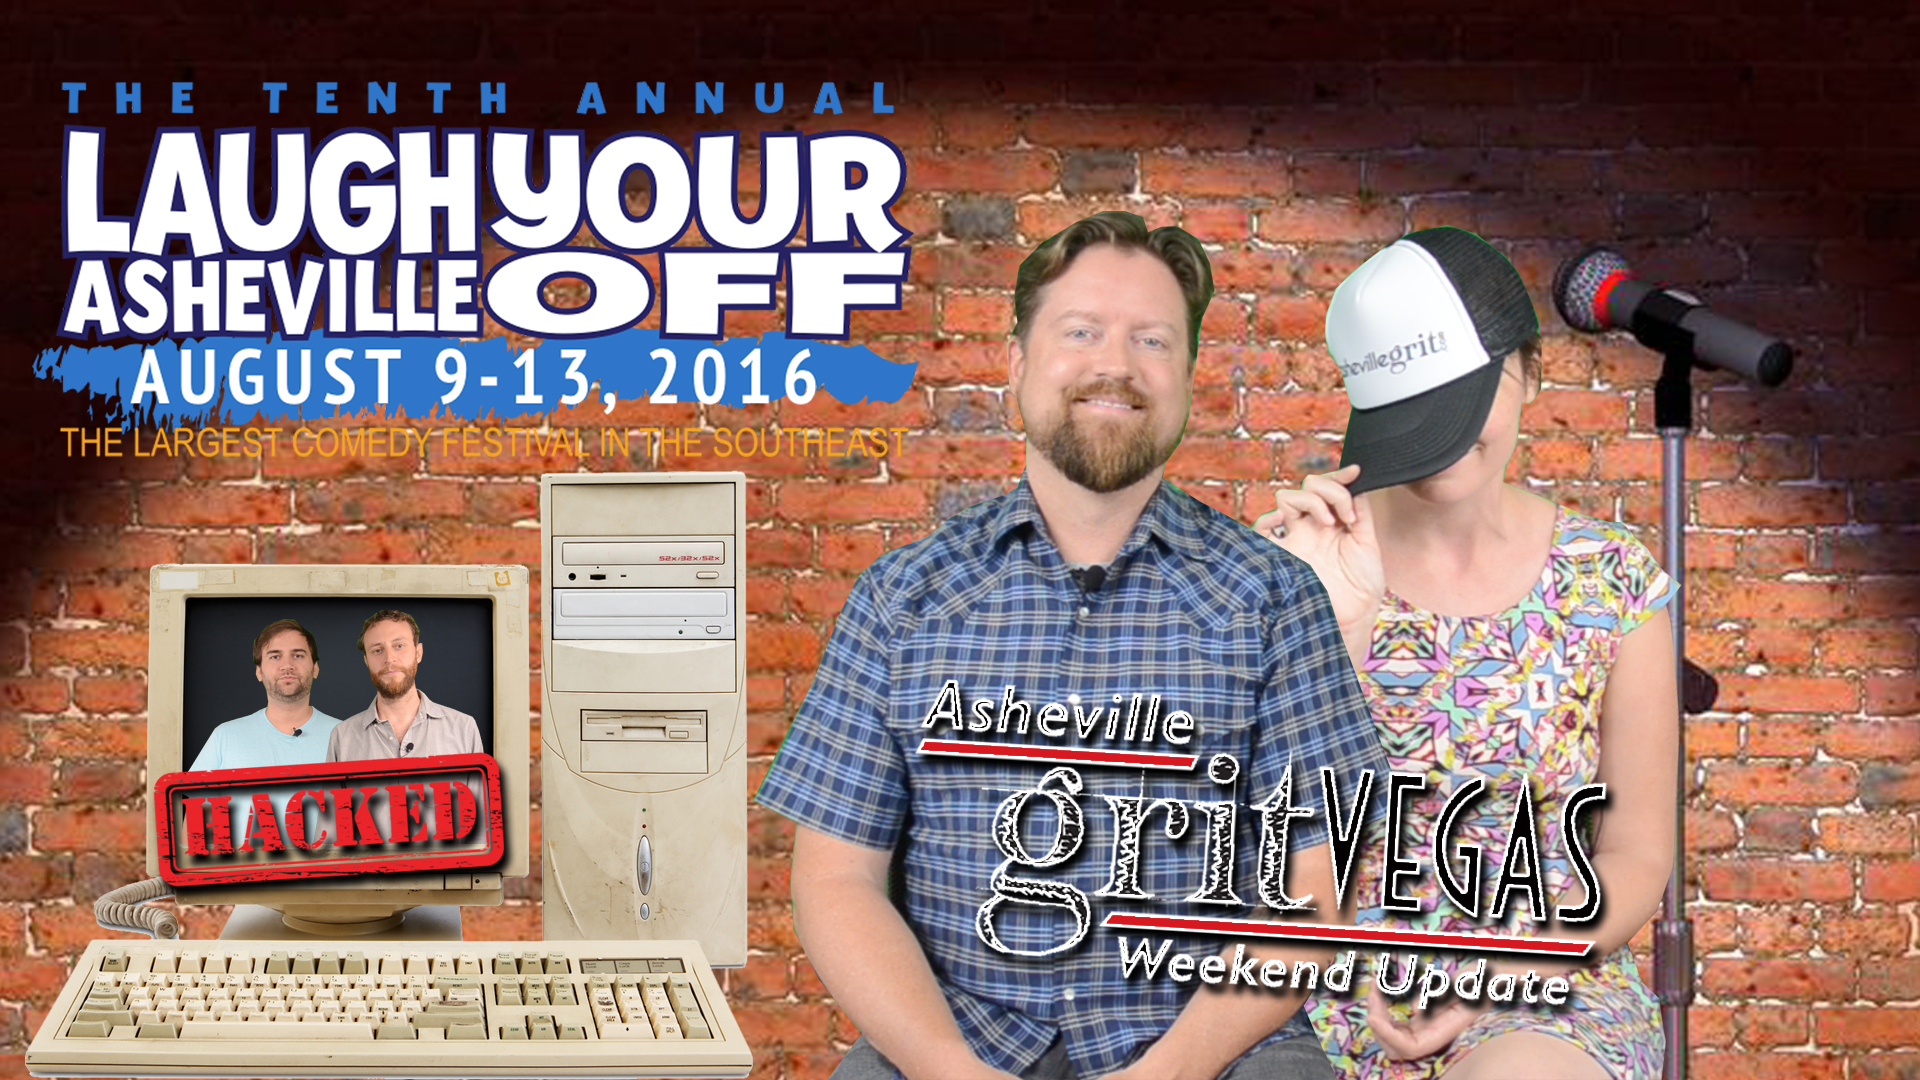 Asheville GritVegas Weekend Update for the weekend of August 11